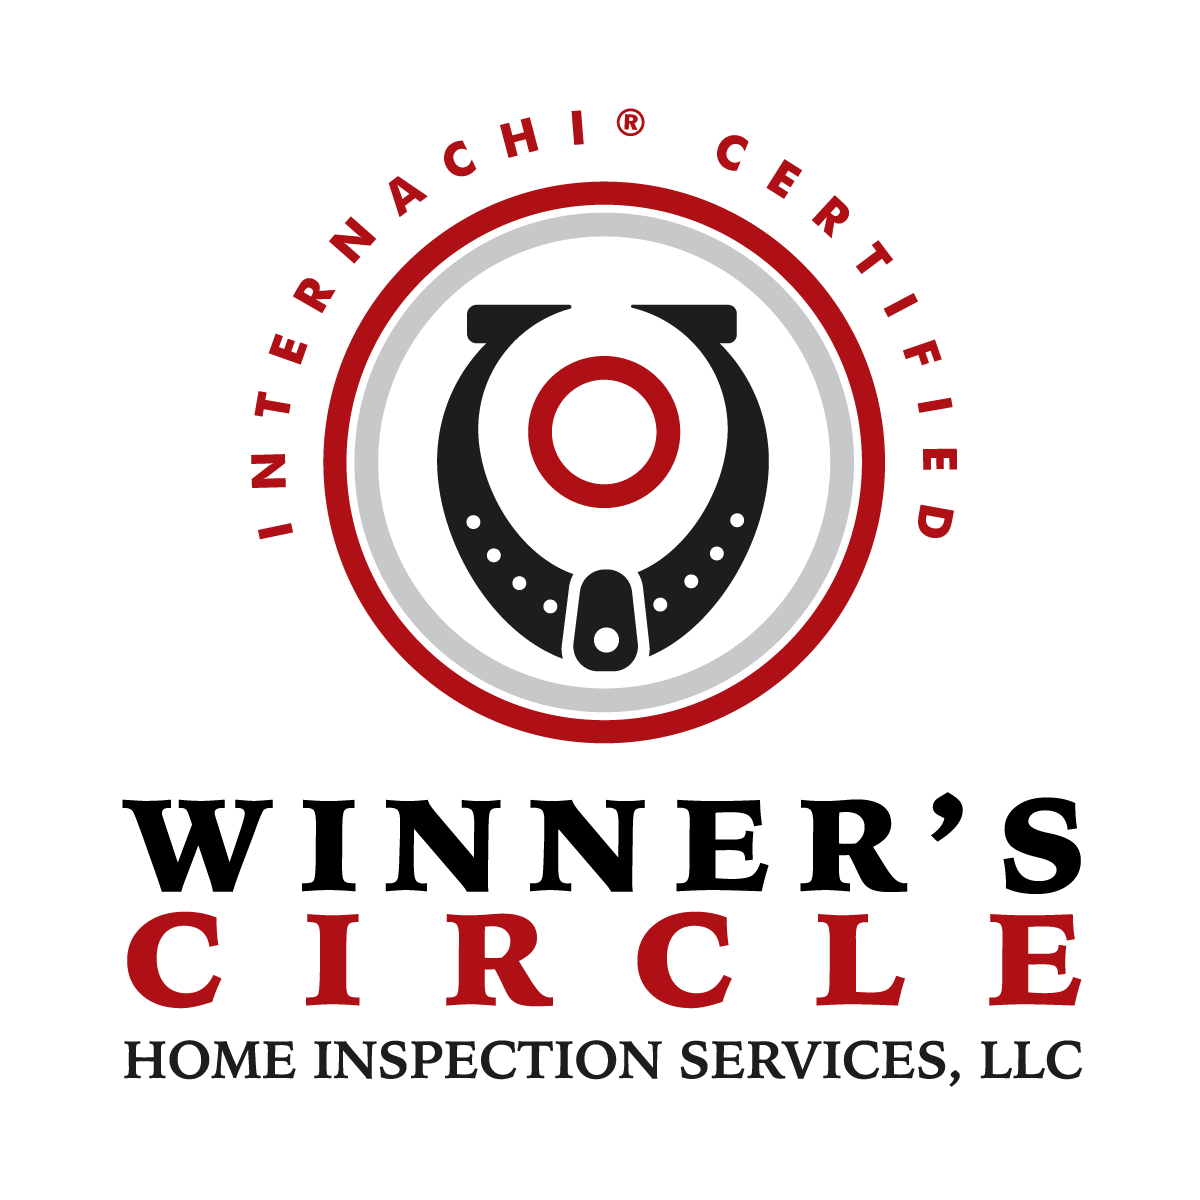 Winner's Circle Home Inspection Services